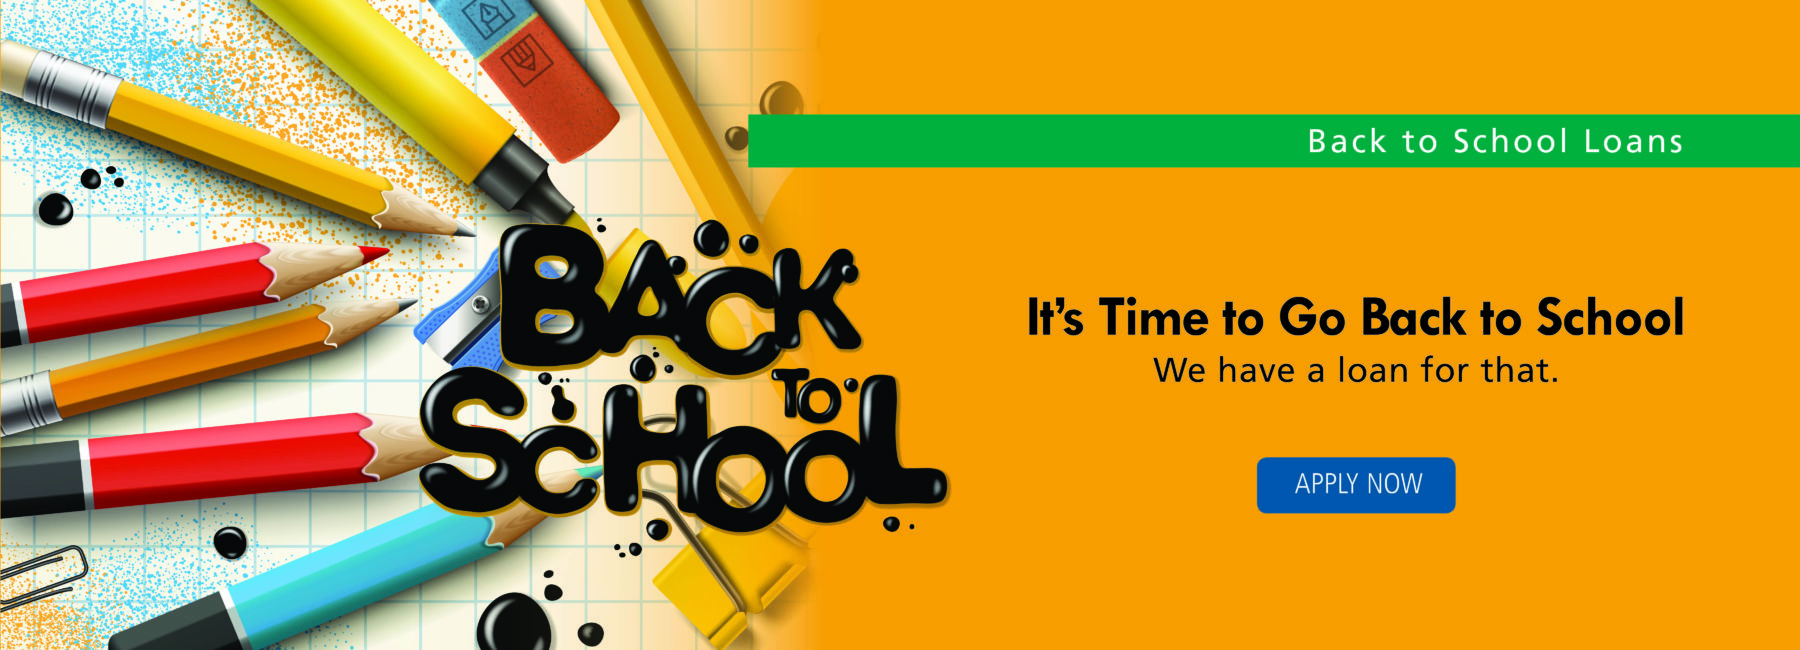 Back to school text and school supplies image